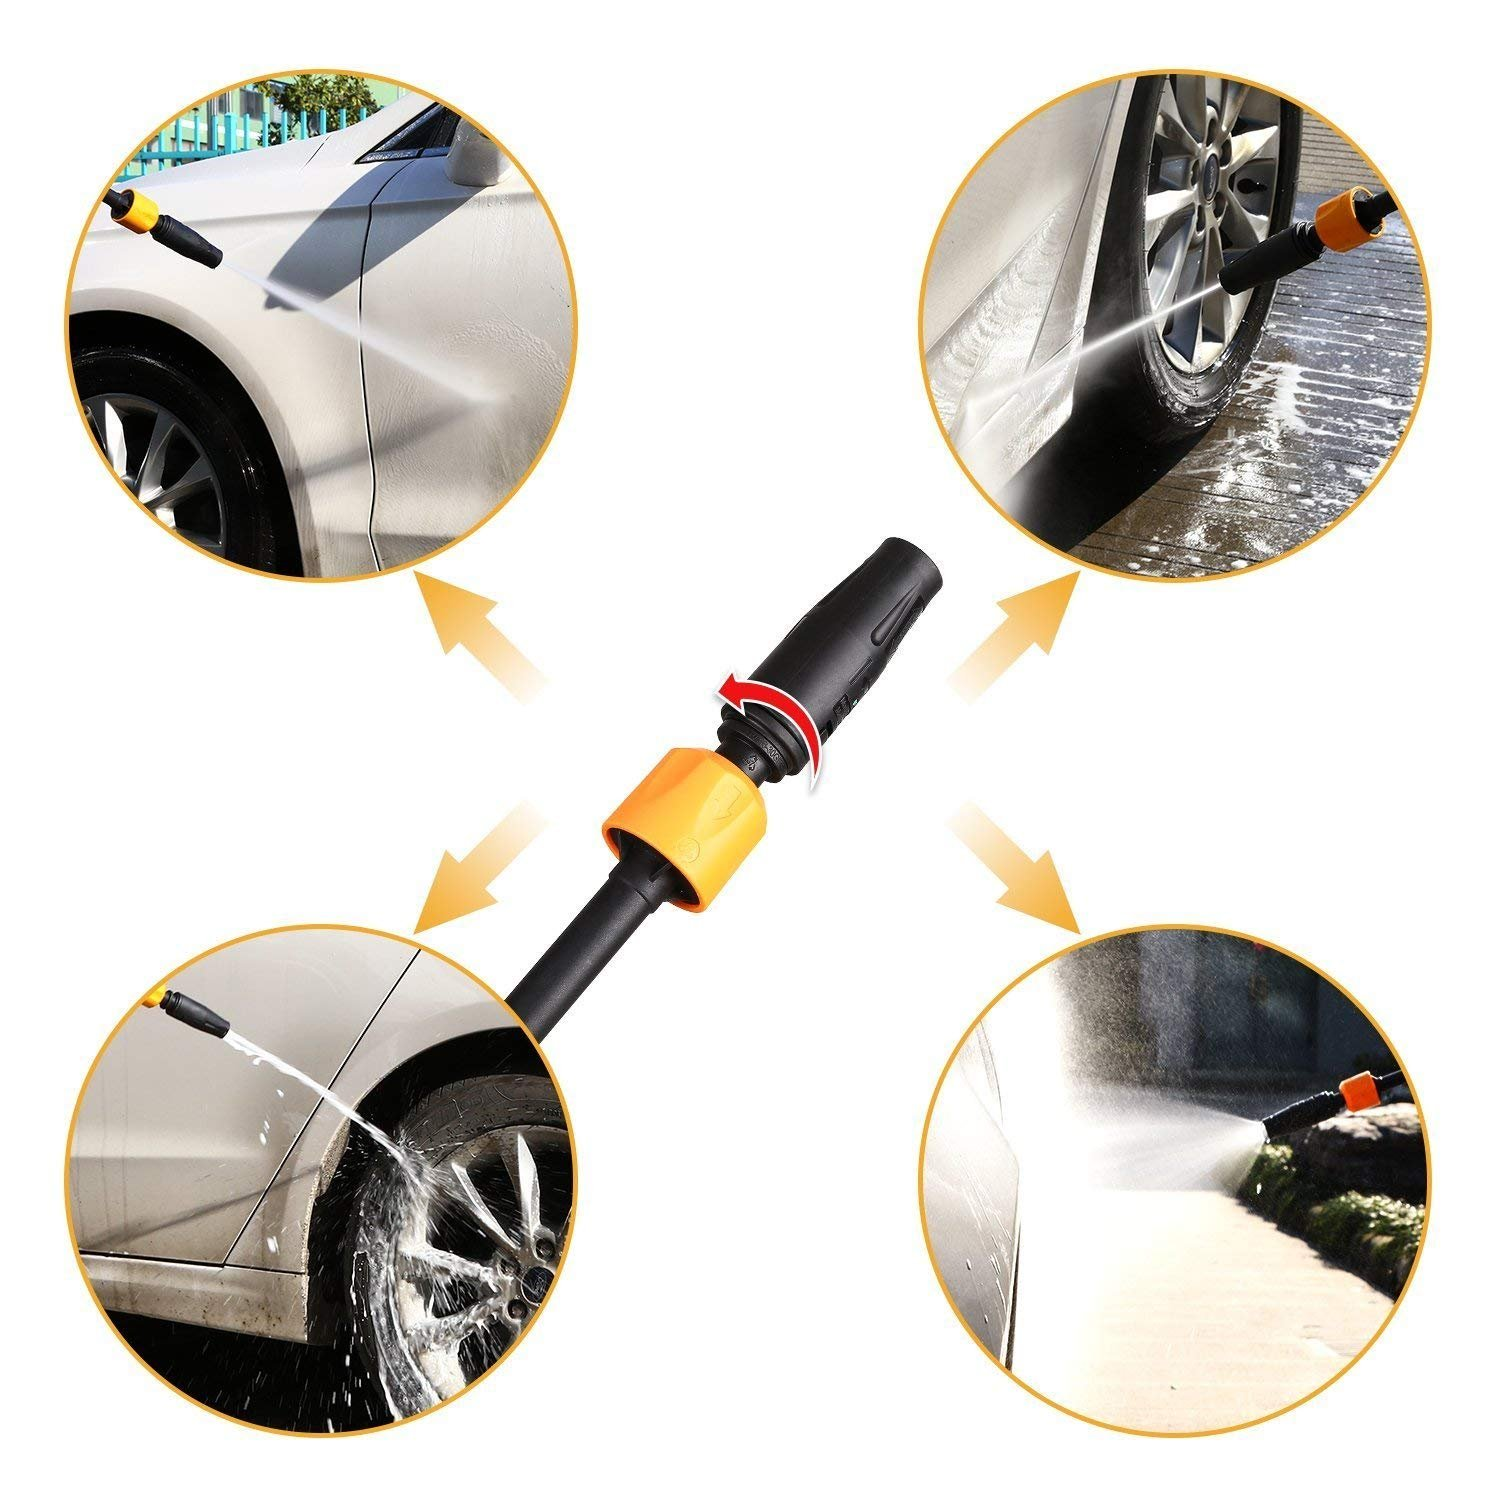 DEKO 2030 PSI 1.76 GPM with Electric Pressure Washer with Hose Reel,Power Hose Nozzle Gun Integrated Hose Reel,Built in Soap//Foam Dispenser